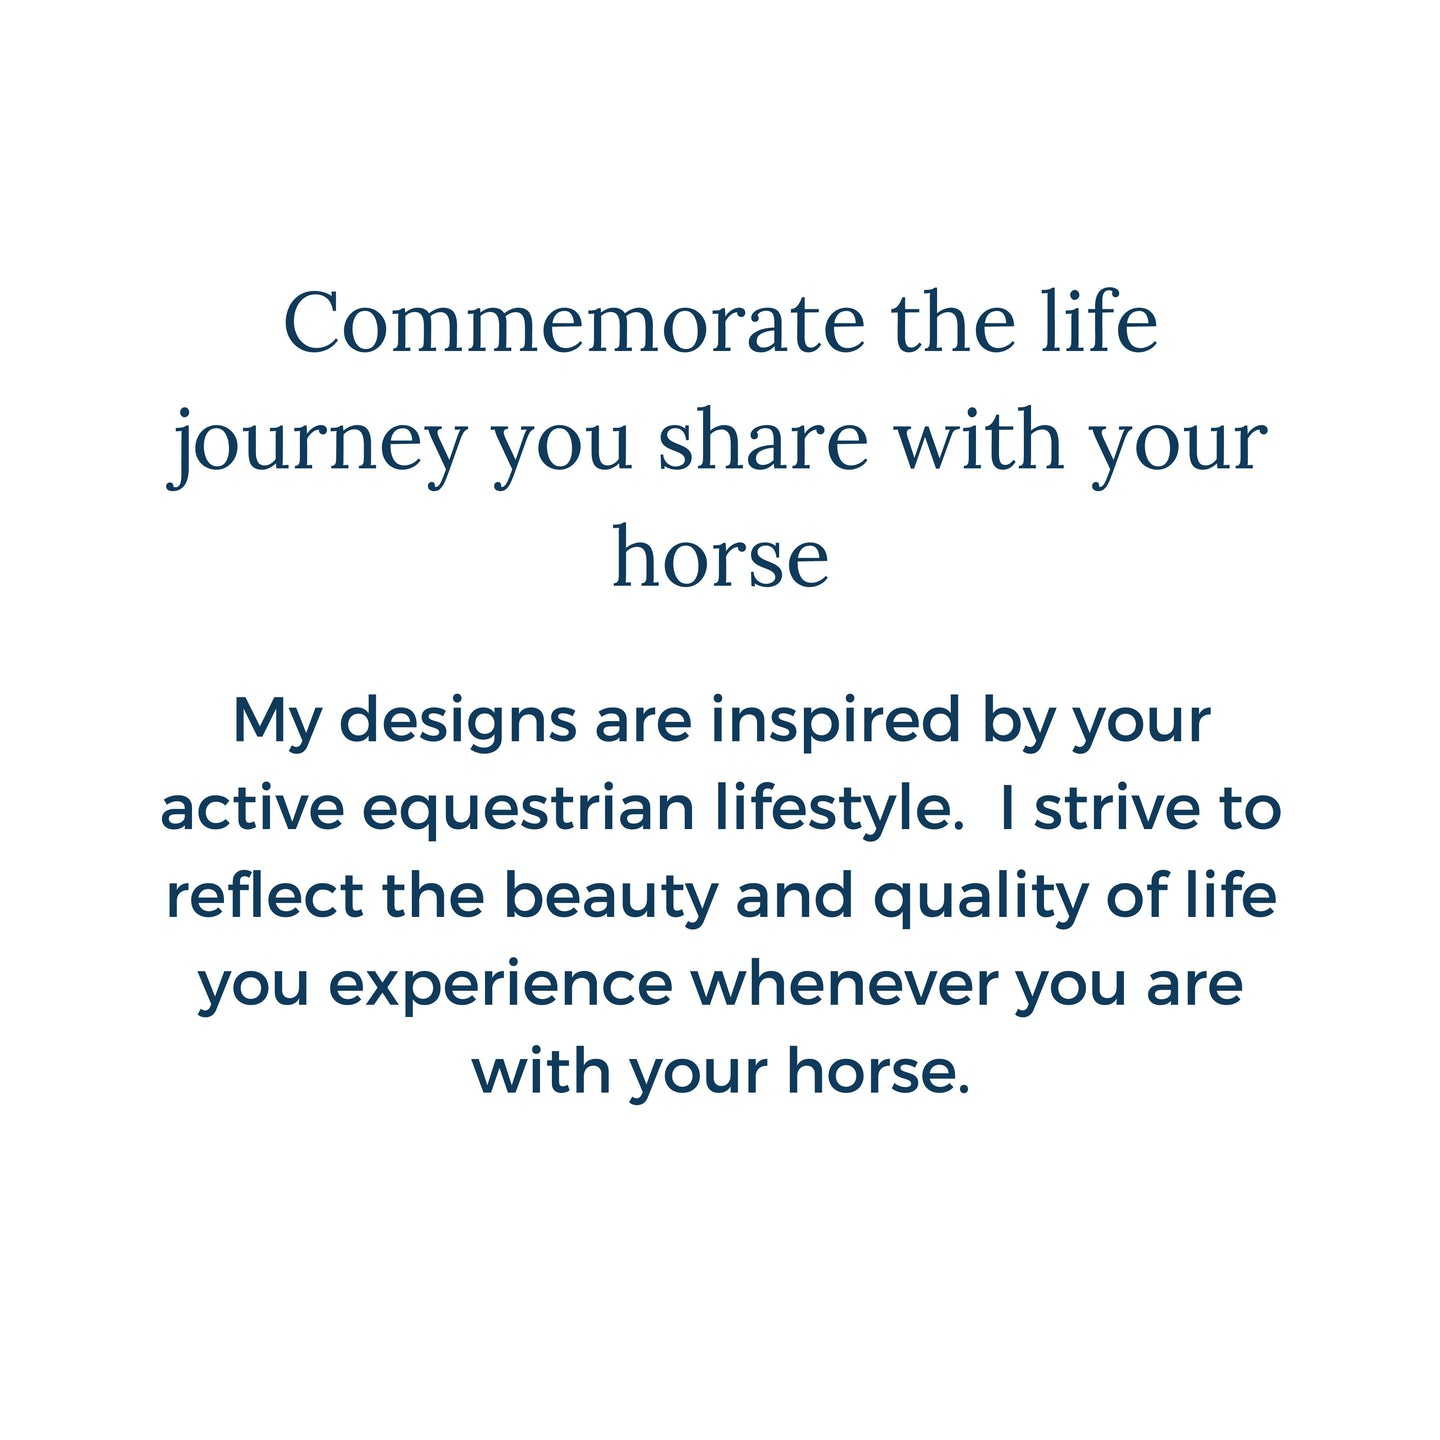 Commemorate the life journey you share with your horse